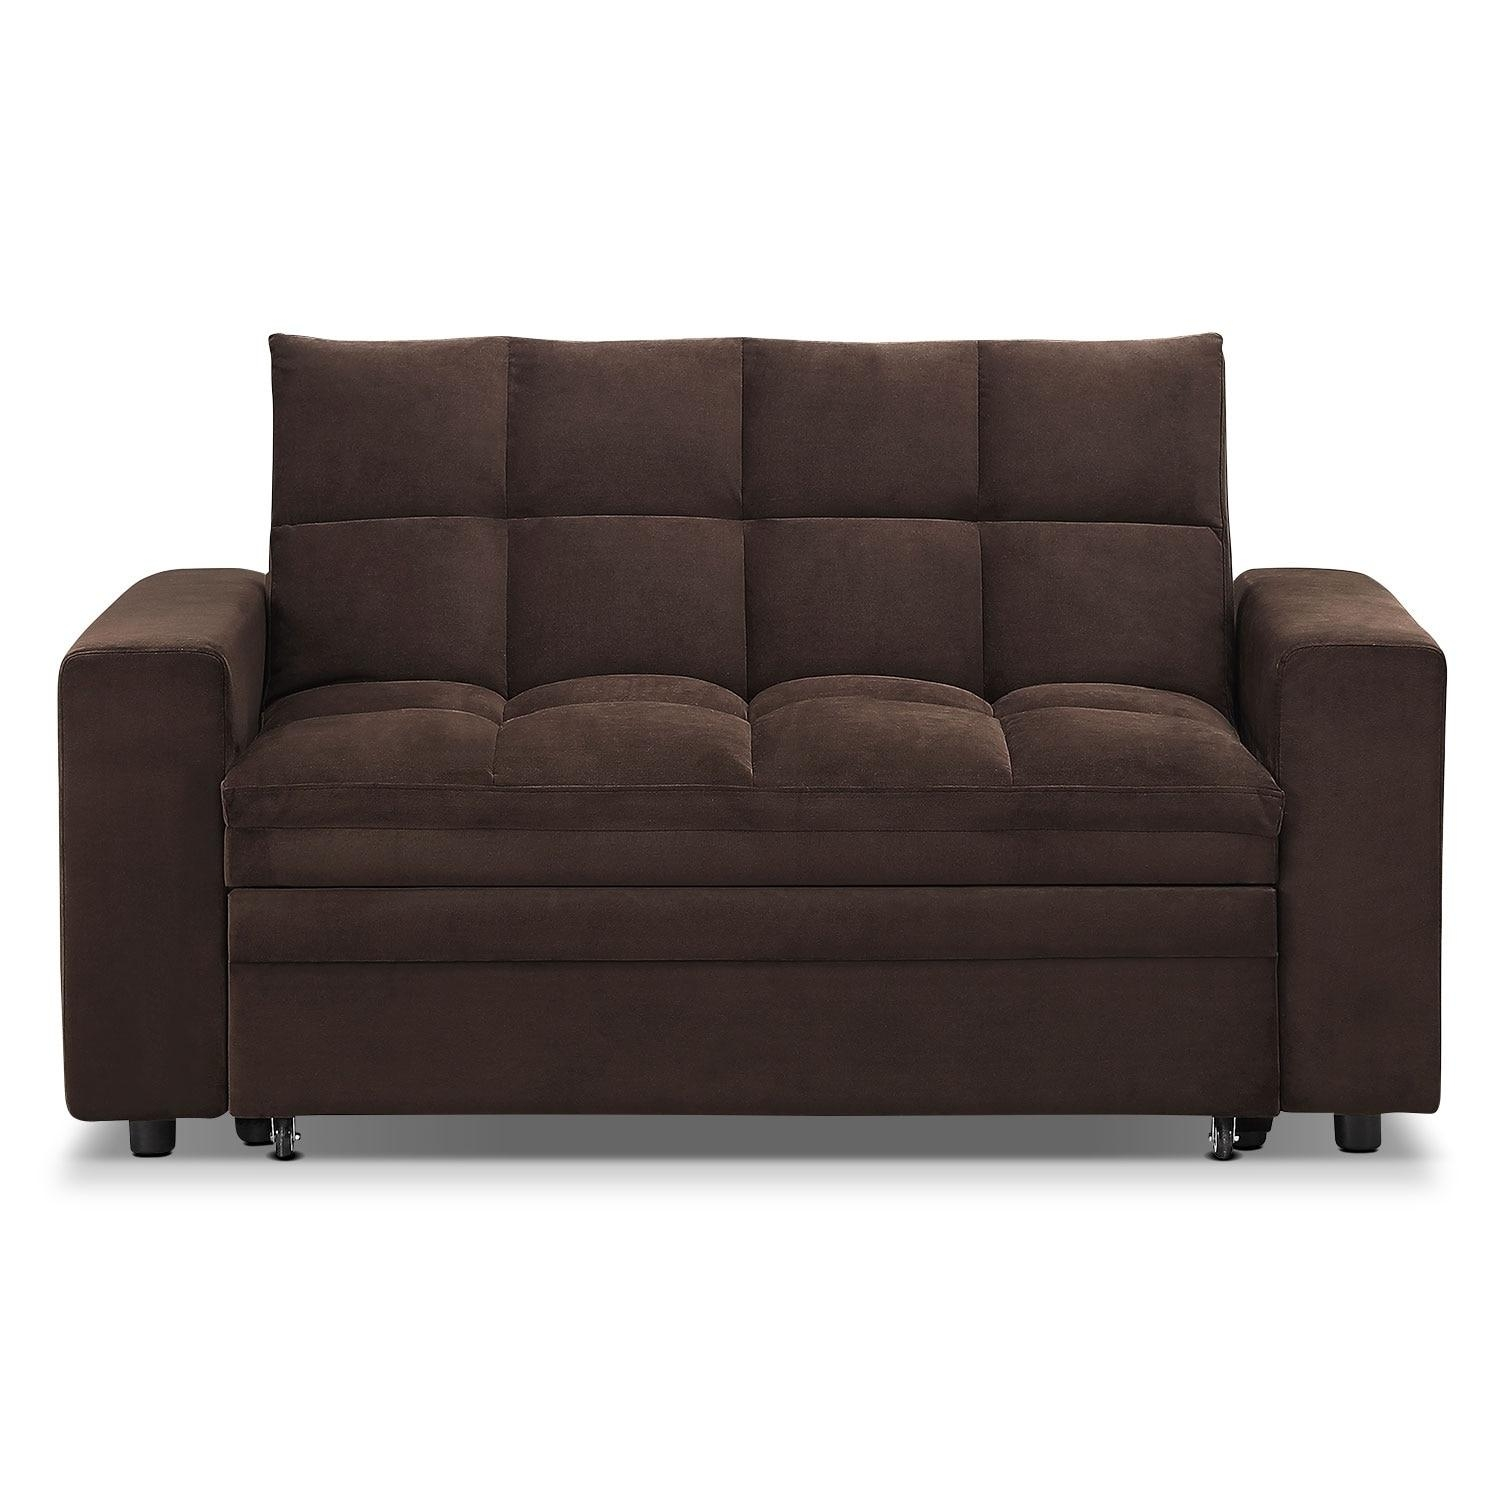 Cheap sofa beds near me 100 alnwick castle cottages for Cheap sofas near me